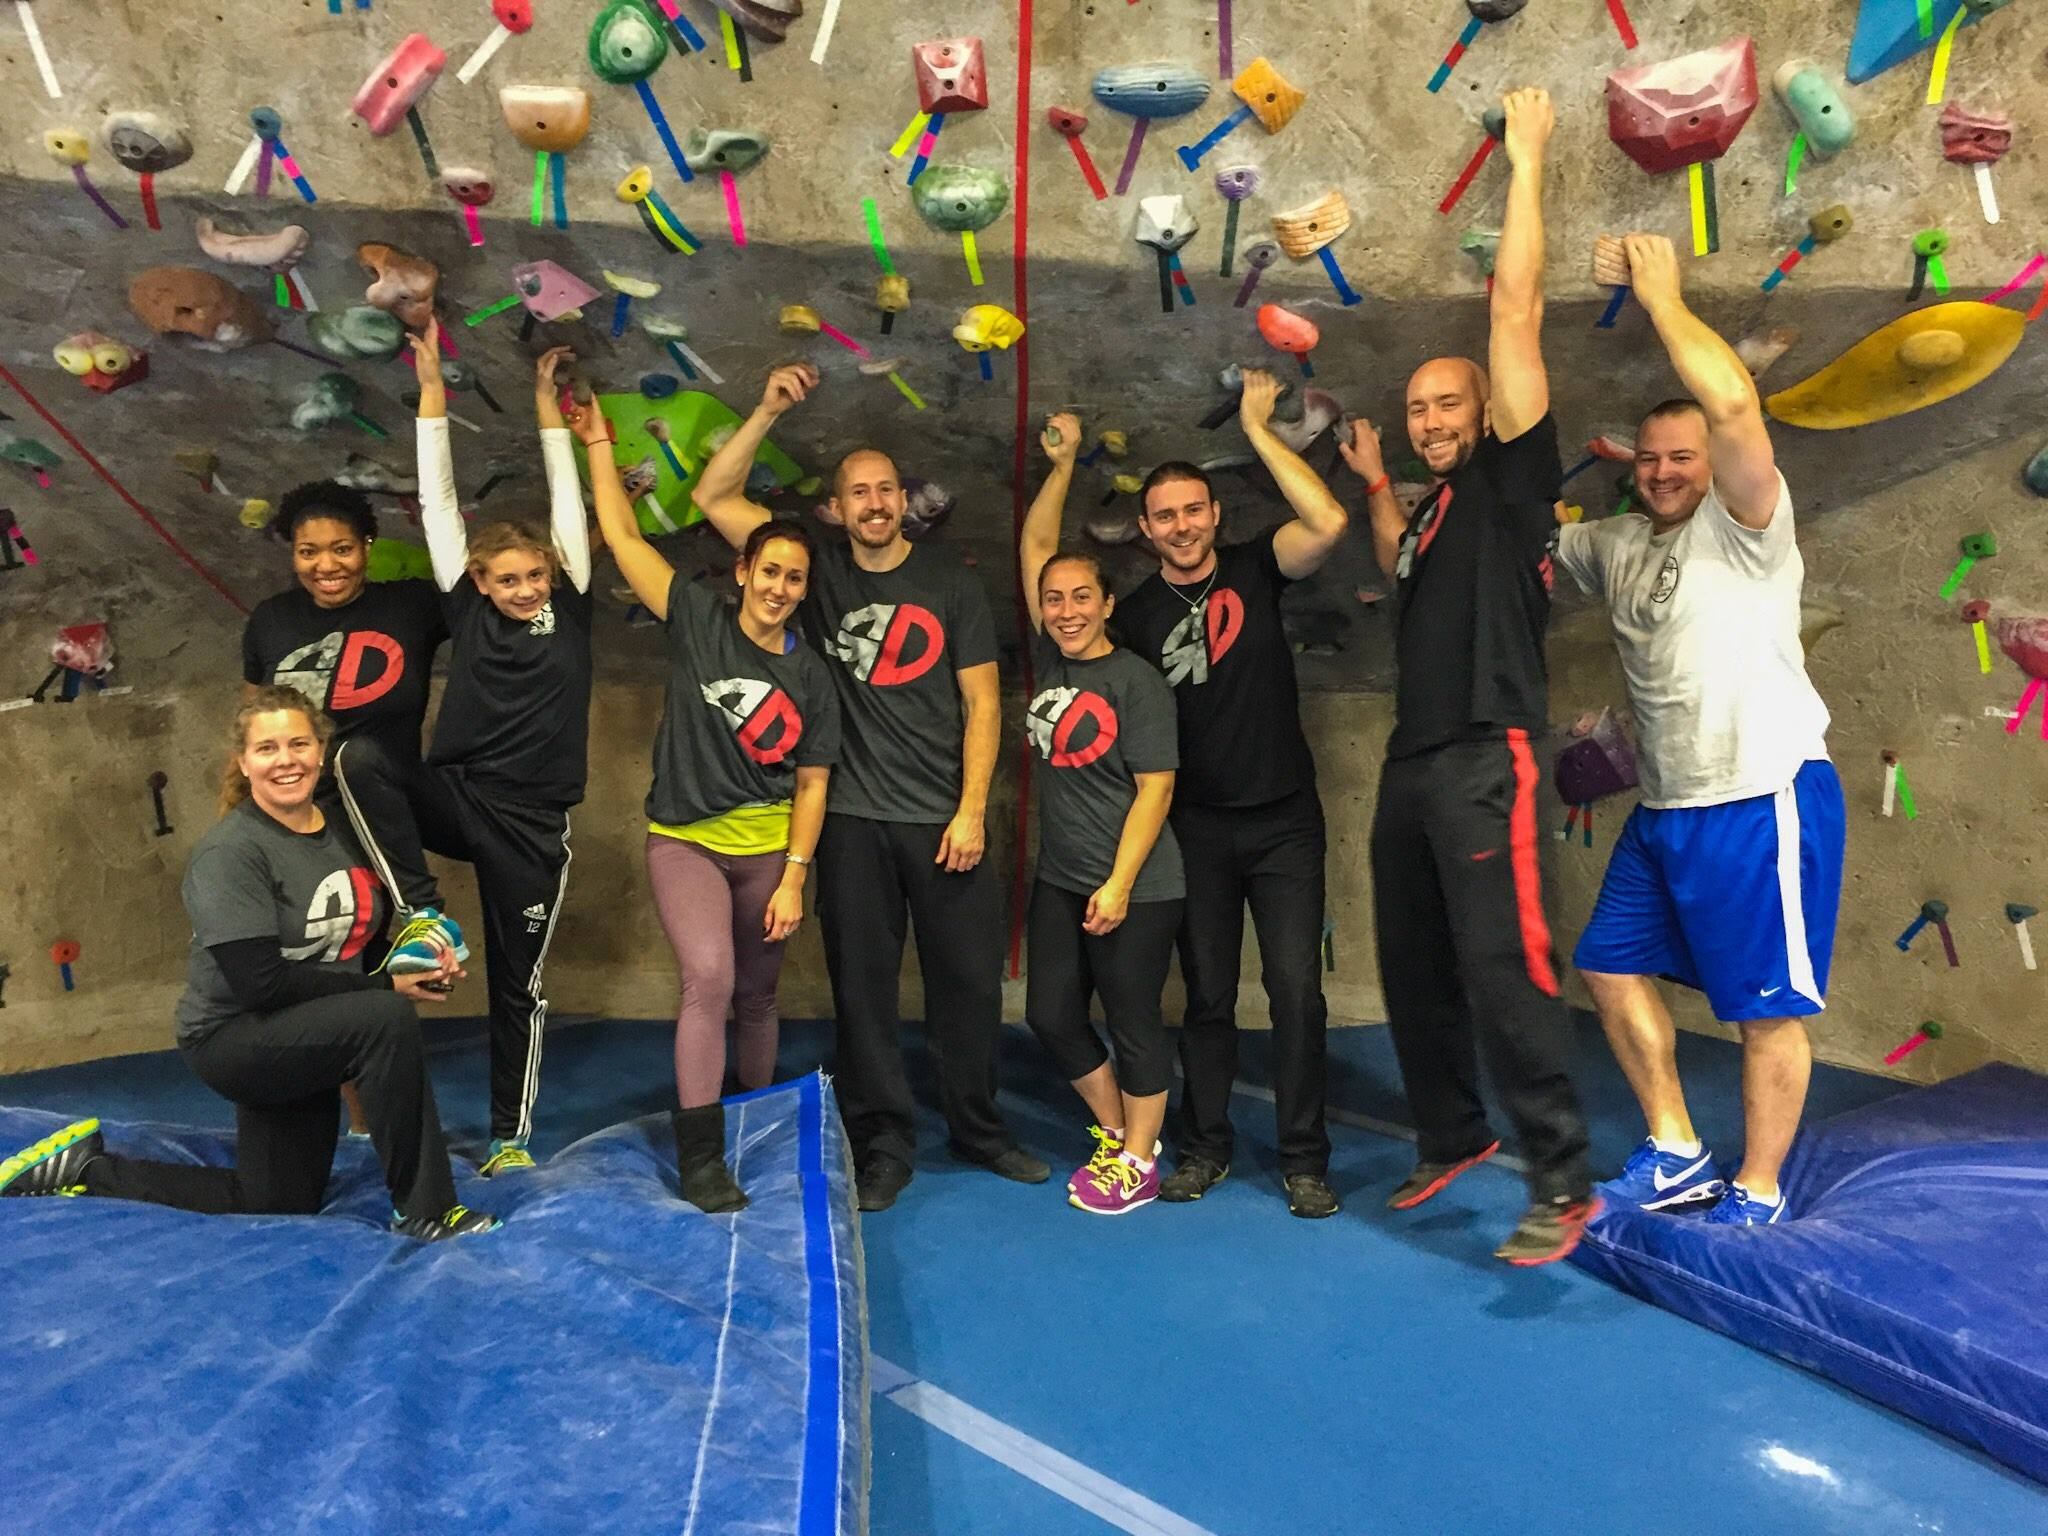 results-driven-indoor-climbing-304978_1280.png